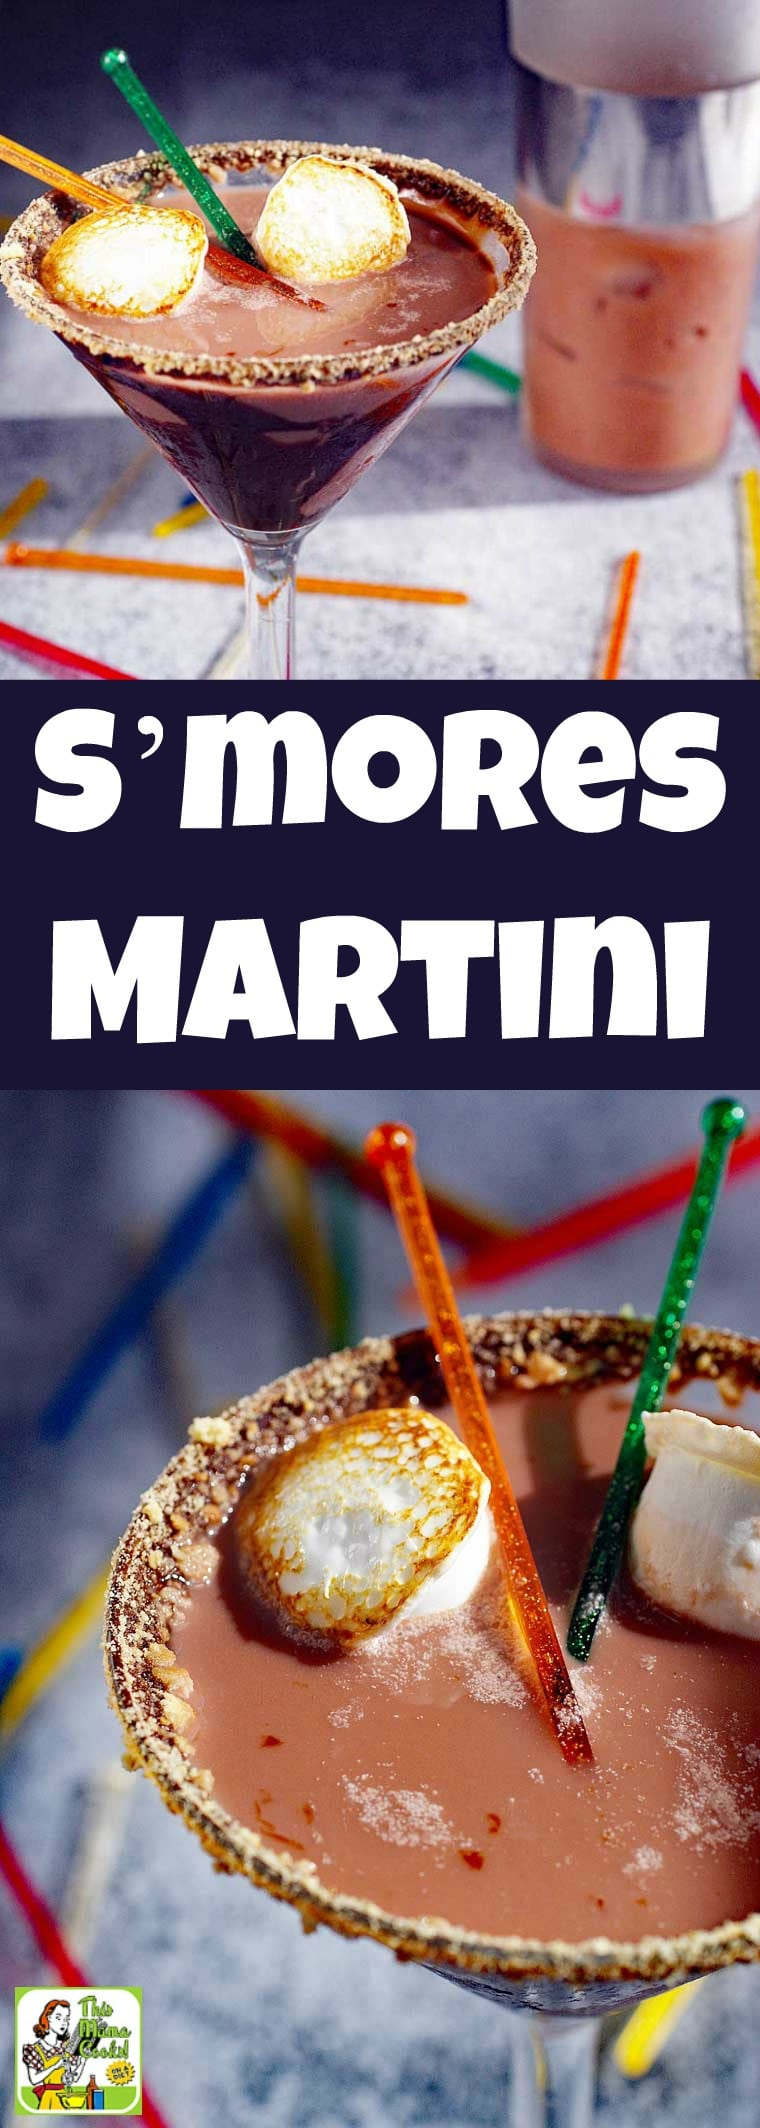 A S'mores Martini is a chocolate martini recipe that tastes like making s'mores and roasting marshmallows over a campfire. It's made with marshmallow vodka, chocolate coconut milk and is dairy free and gluten free. It's the ultimate chocolate martini cocktail drink for Christmas, New Year's Eve or Valentine's Day. #recipe #easy #recipeoftheday #glutenfree #drinks #cocktails #Christmas #NewYearsEve #chocolate #martini #cocktailrecipe #drinkrecipe #dairyfree #smores #vodka #vodkacocktail